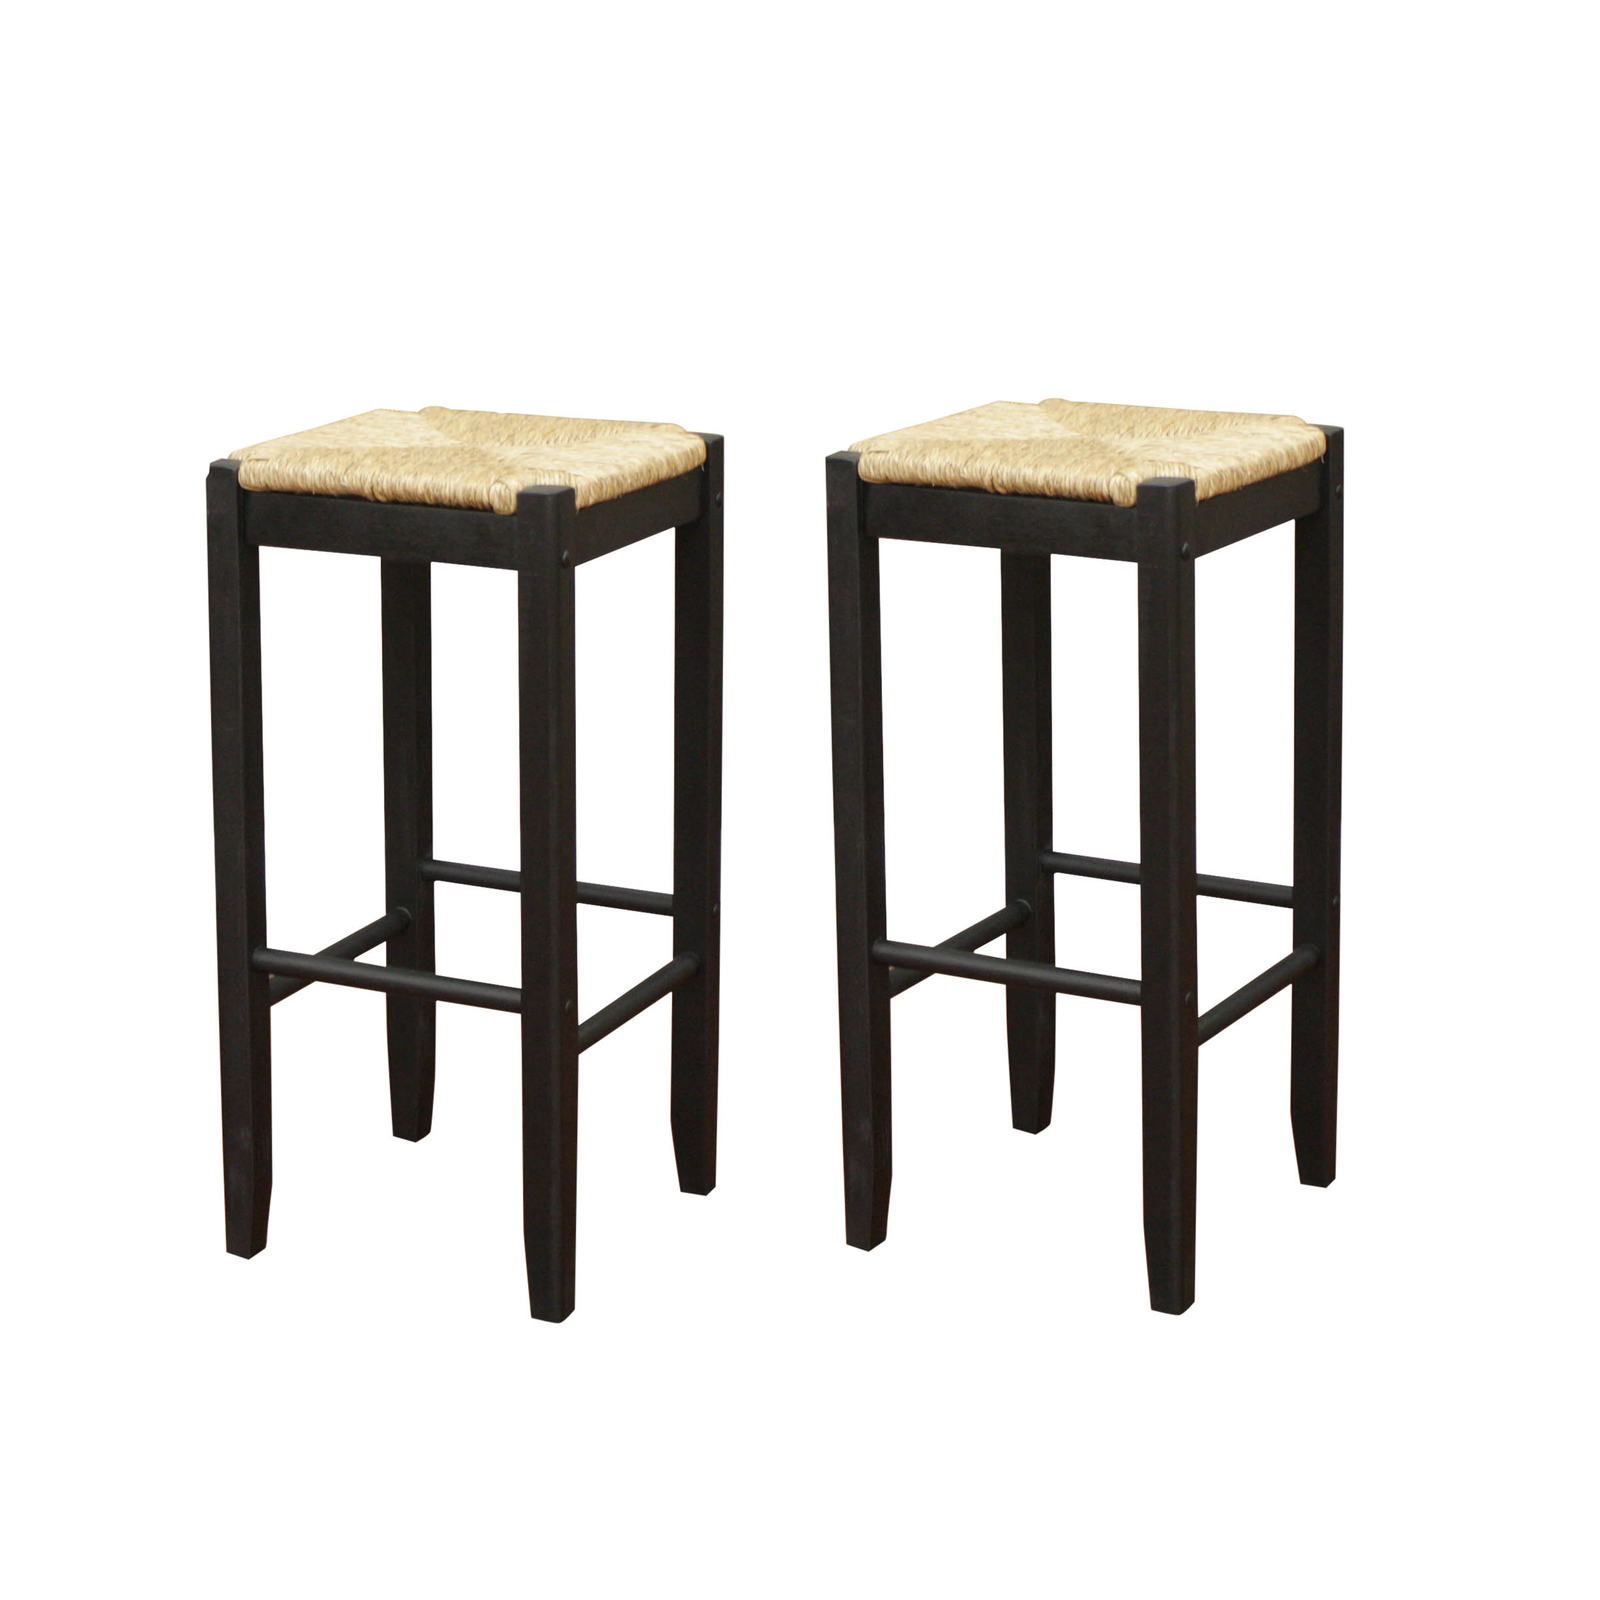 Superb img of Wooden Black kitchen counter bar stools great for home dining Bar  with #967735 color and 1600x1600 pixels